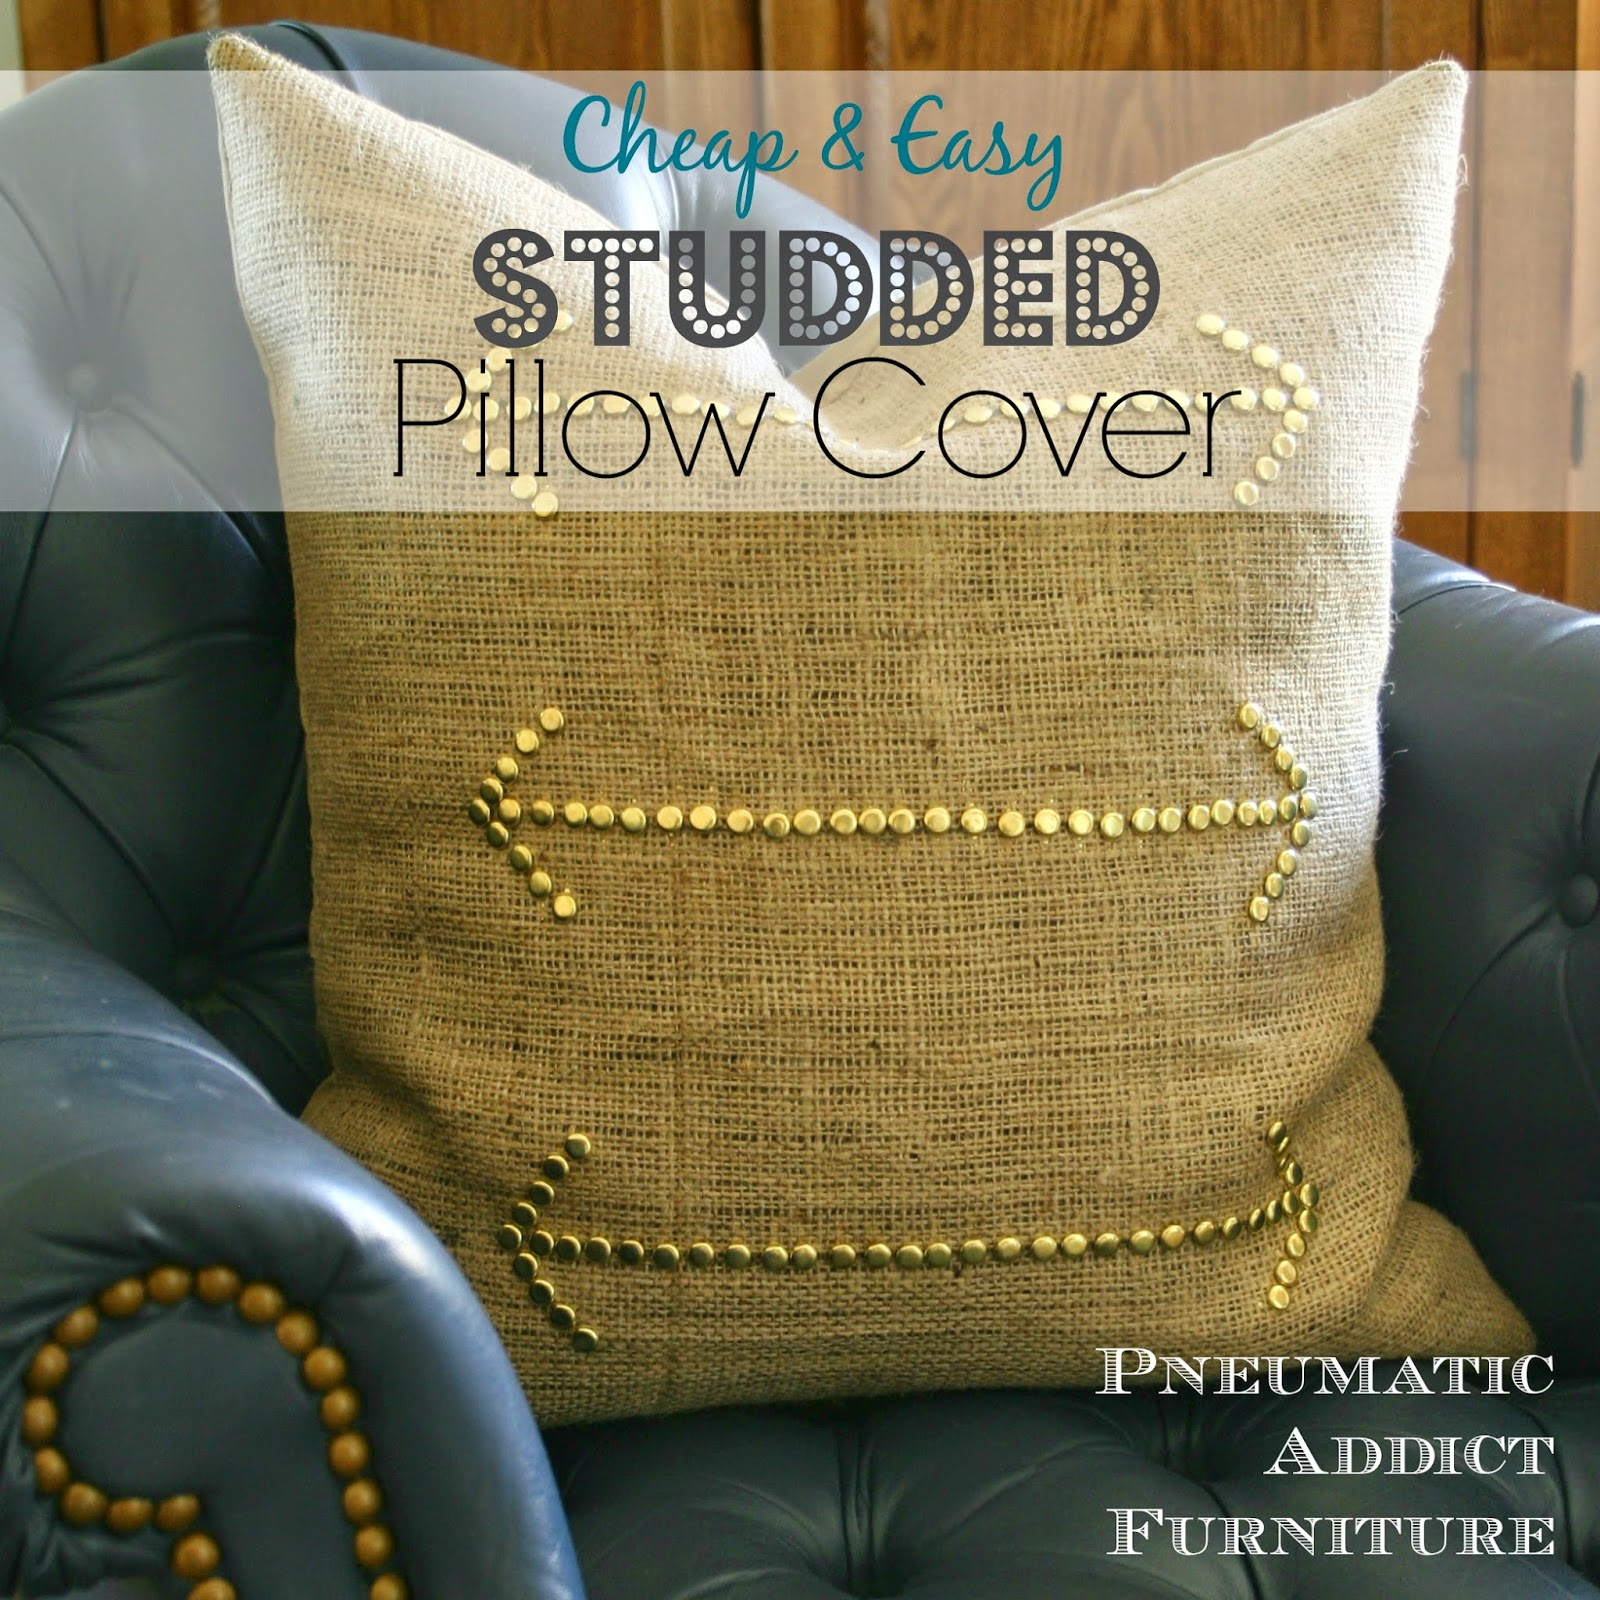 Pneumatic Addict Cheap & Easy Studded Pillow Cover